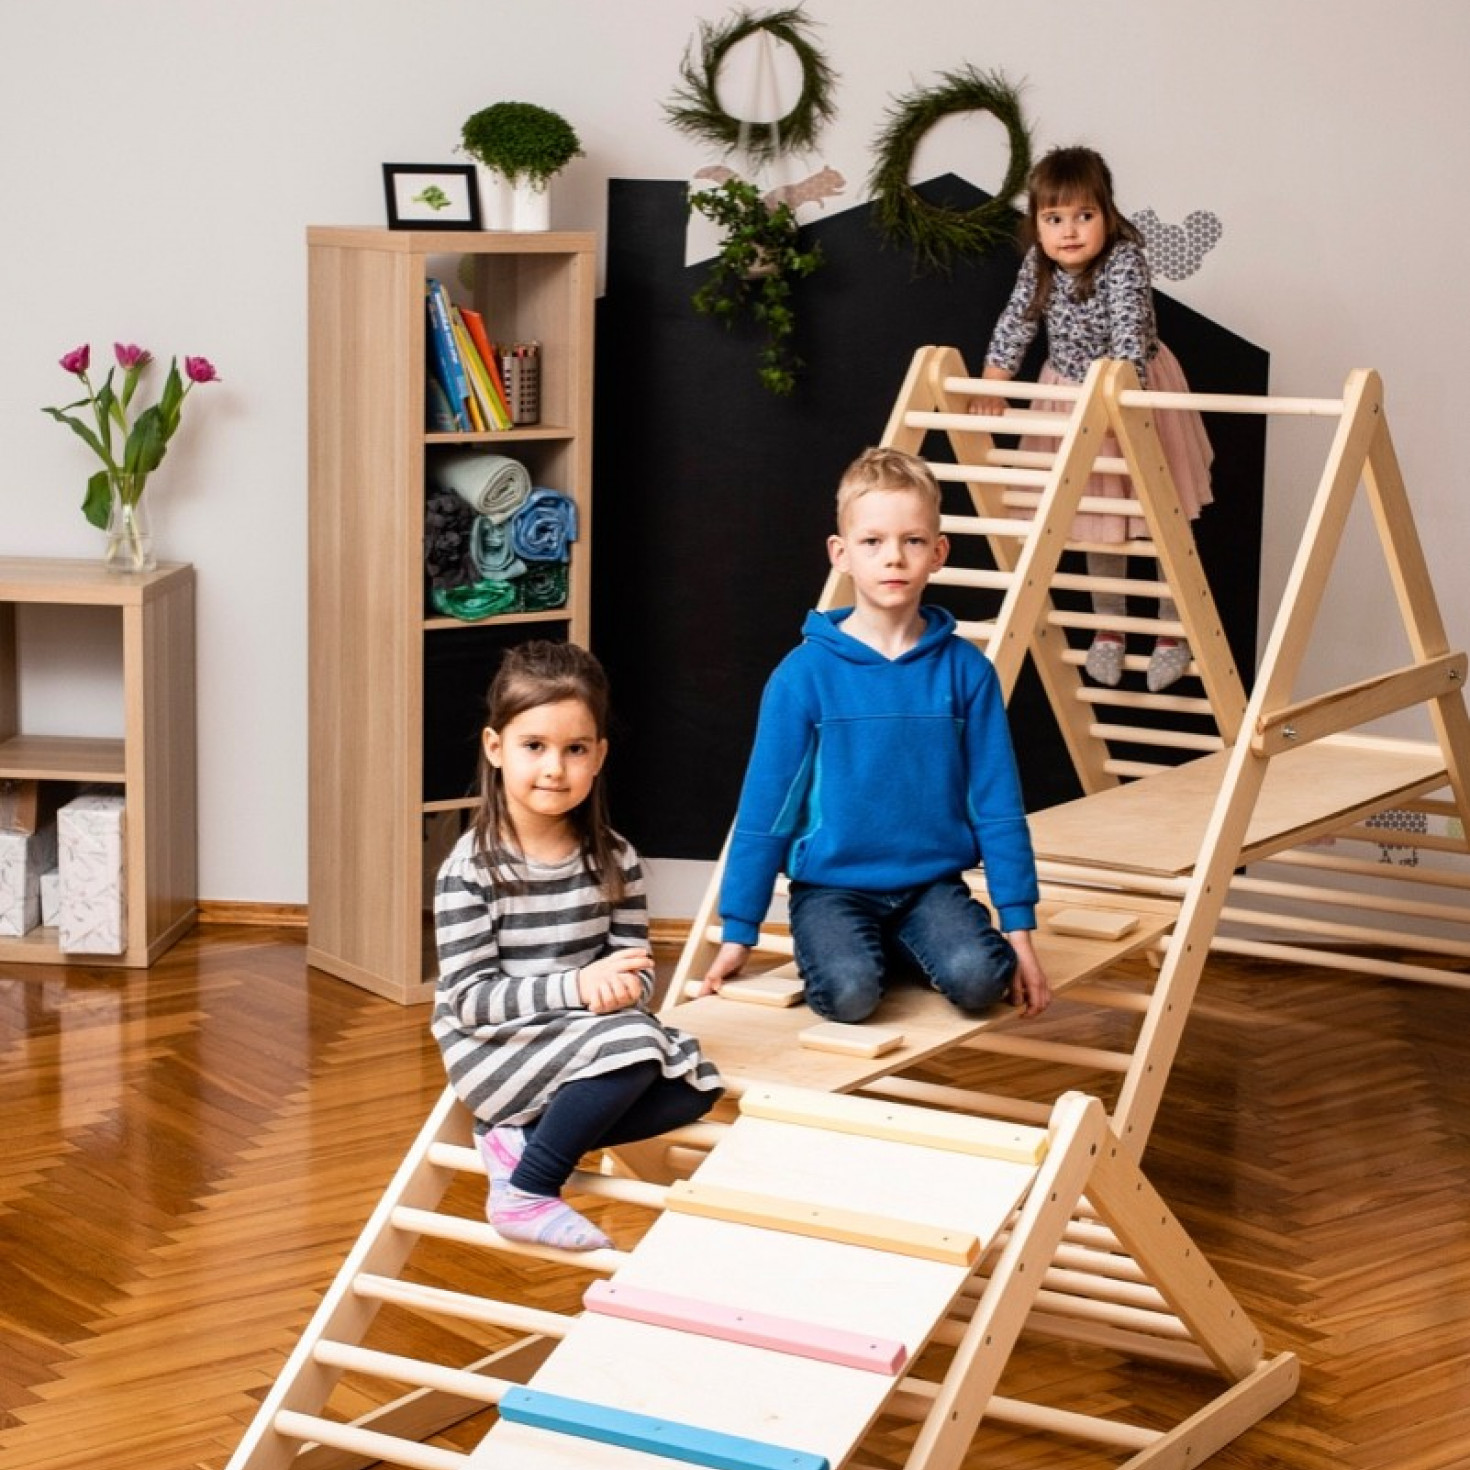 Children playing on a climbing ladder